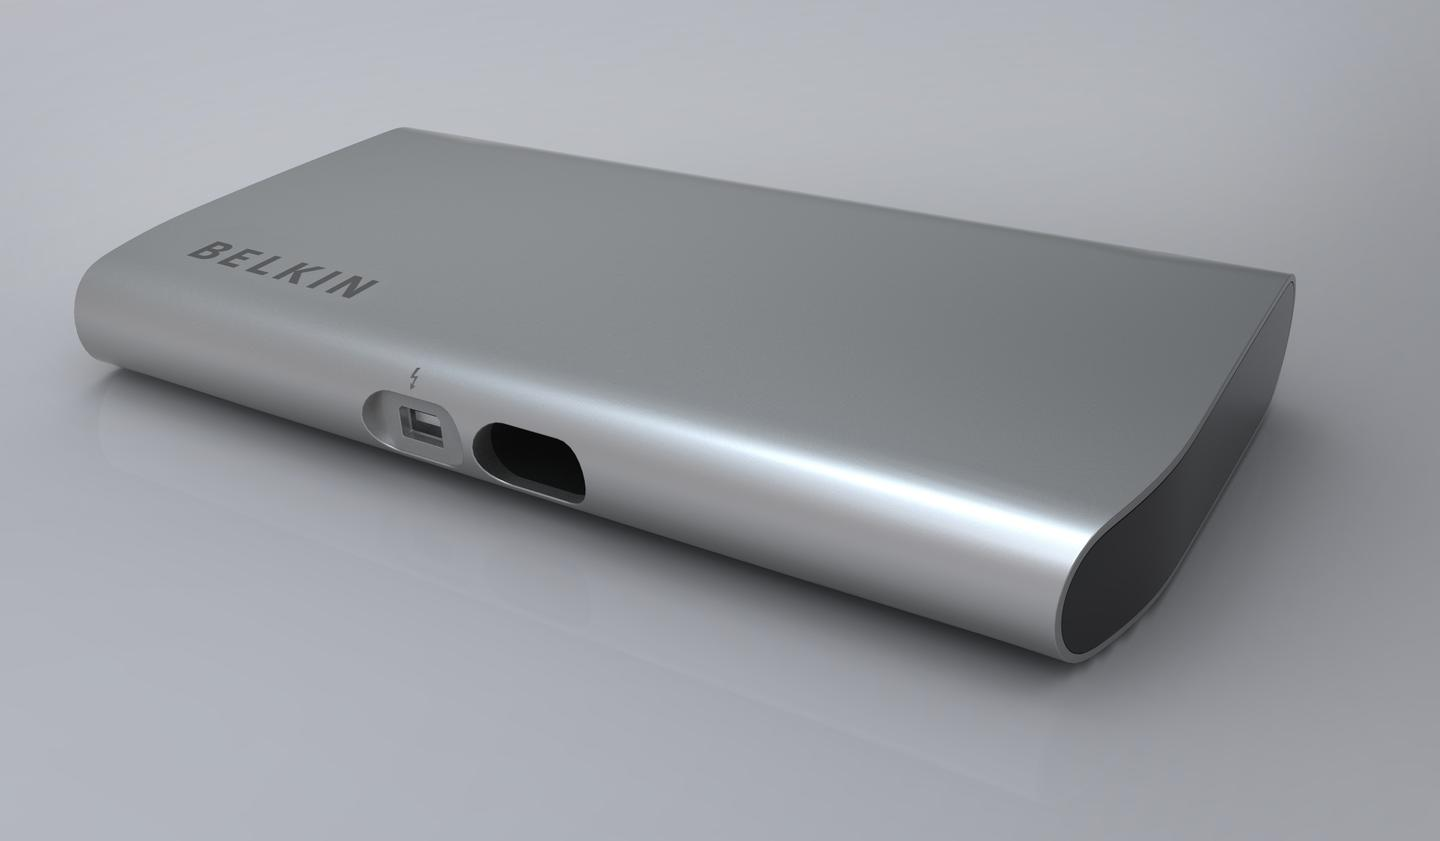 Belkin's Thunderbolt Express Dock is due out in September 2012